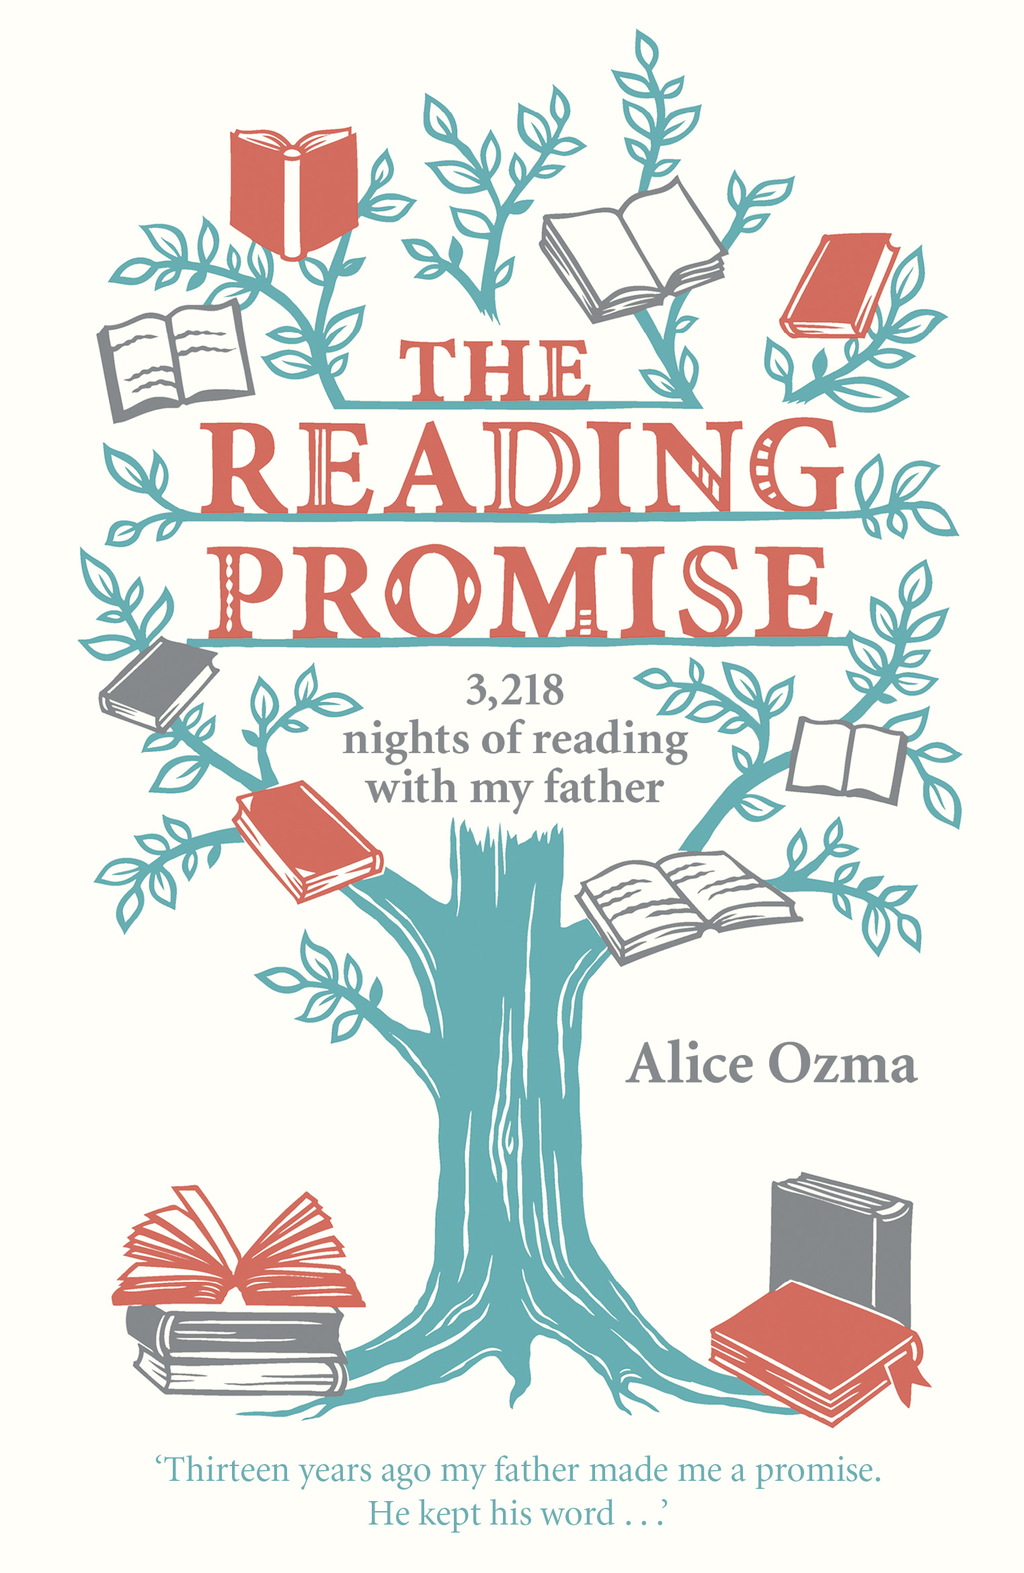 The Reading Promise 3, 218 nights of reading with my father